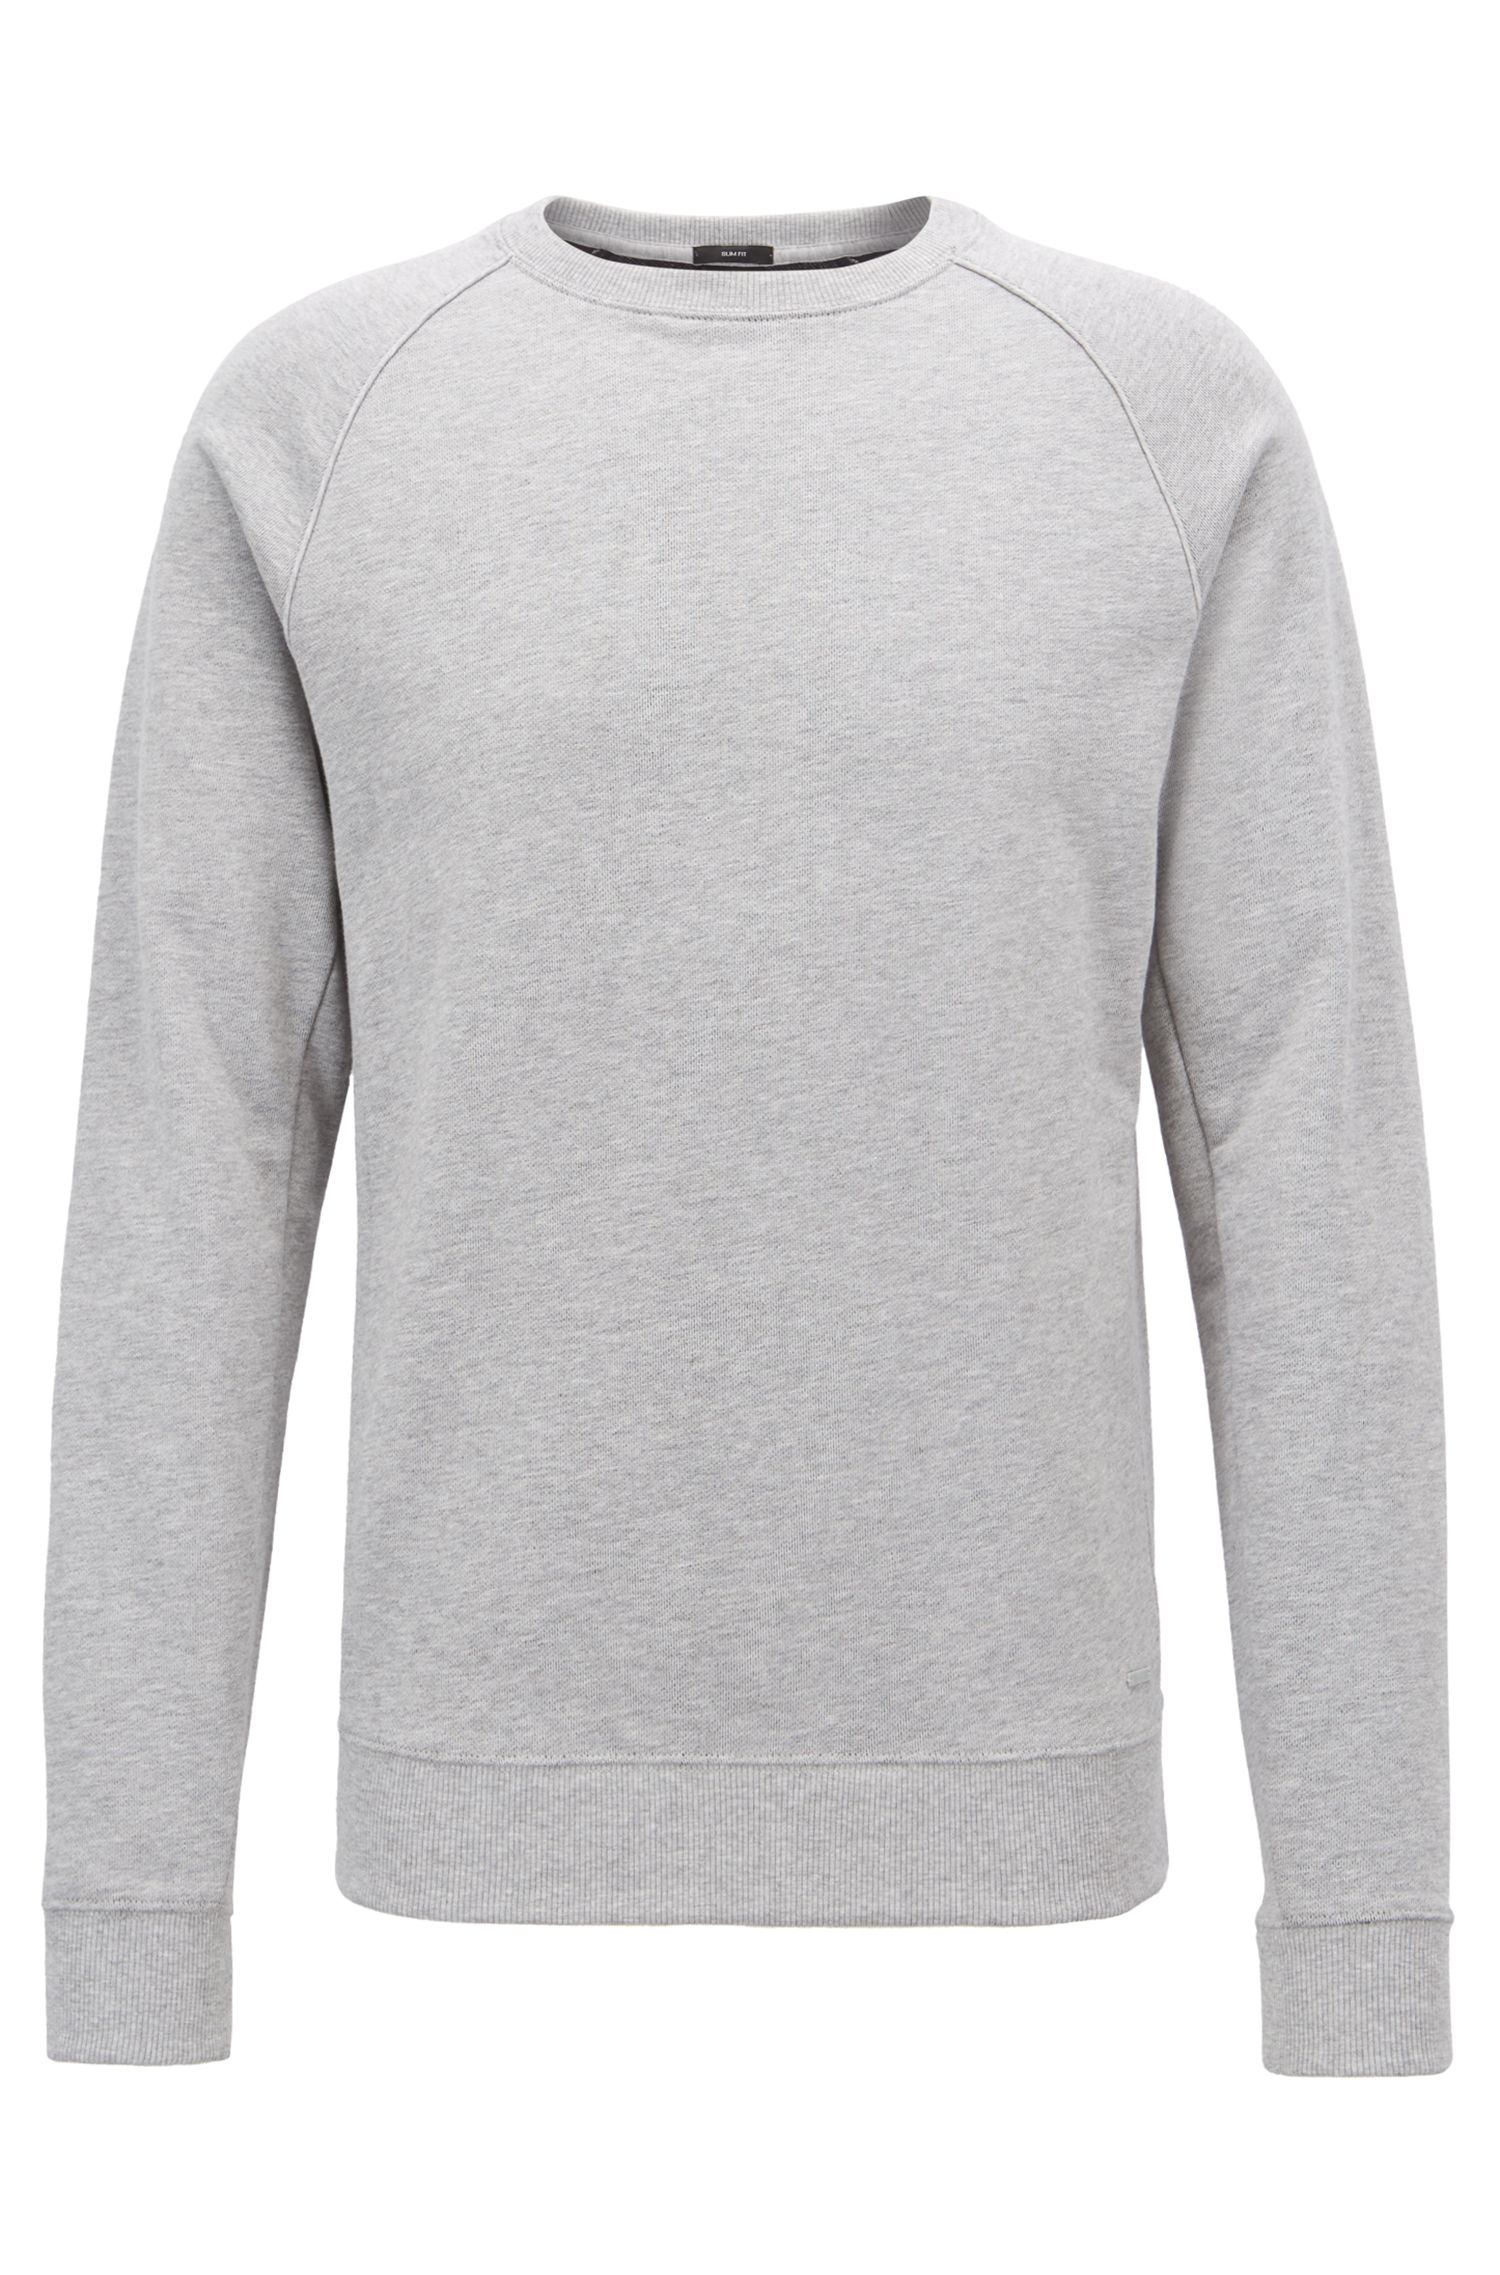 Crew-neck sweater in cotton terry with piping